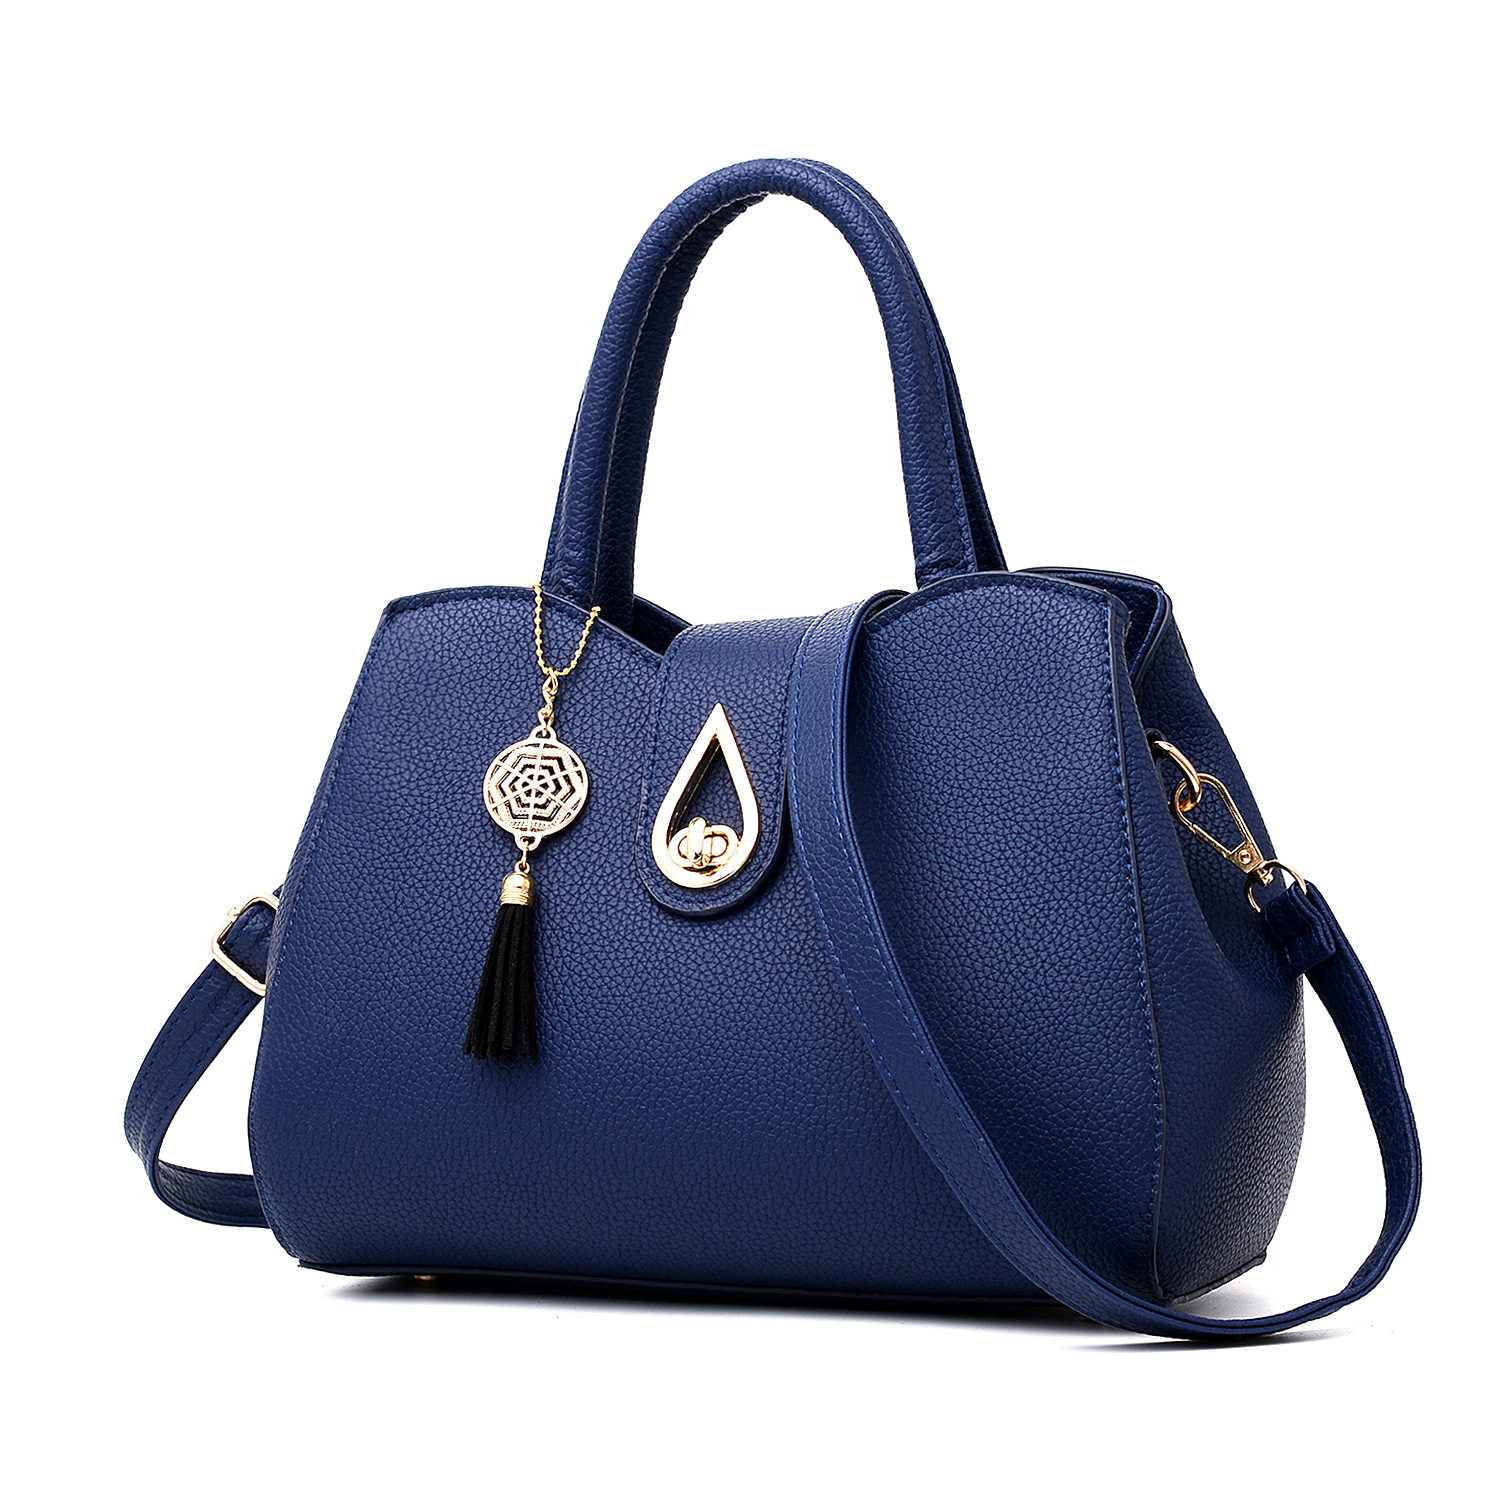 Compare Prices on Ladies' Bag- Online Shopping/Buy Low Price ...